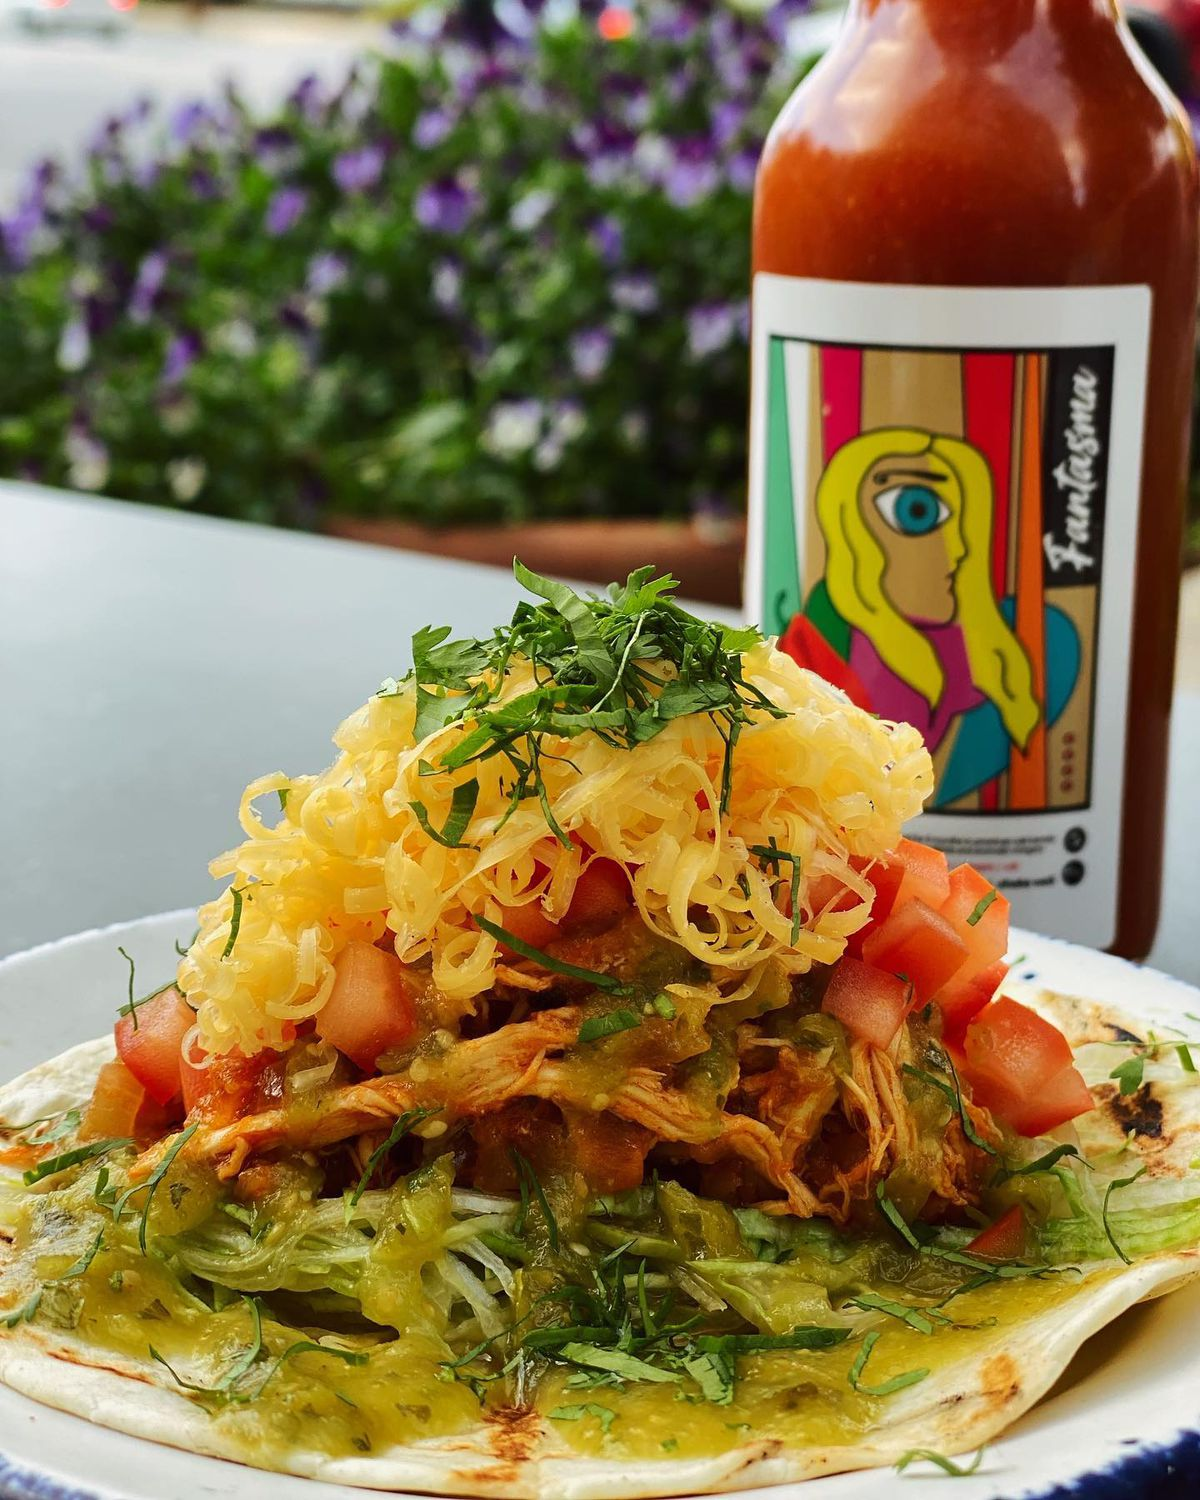 Chicken tinga topped with shredded cheese, chives, and chopped tomatoes sits atop a flour tortilla with a bottle of hot sauce in the background.